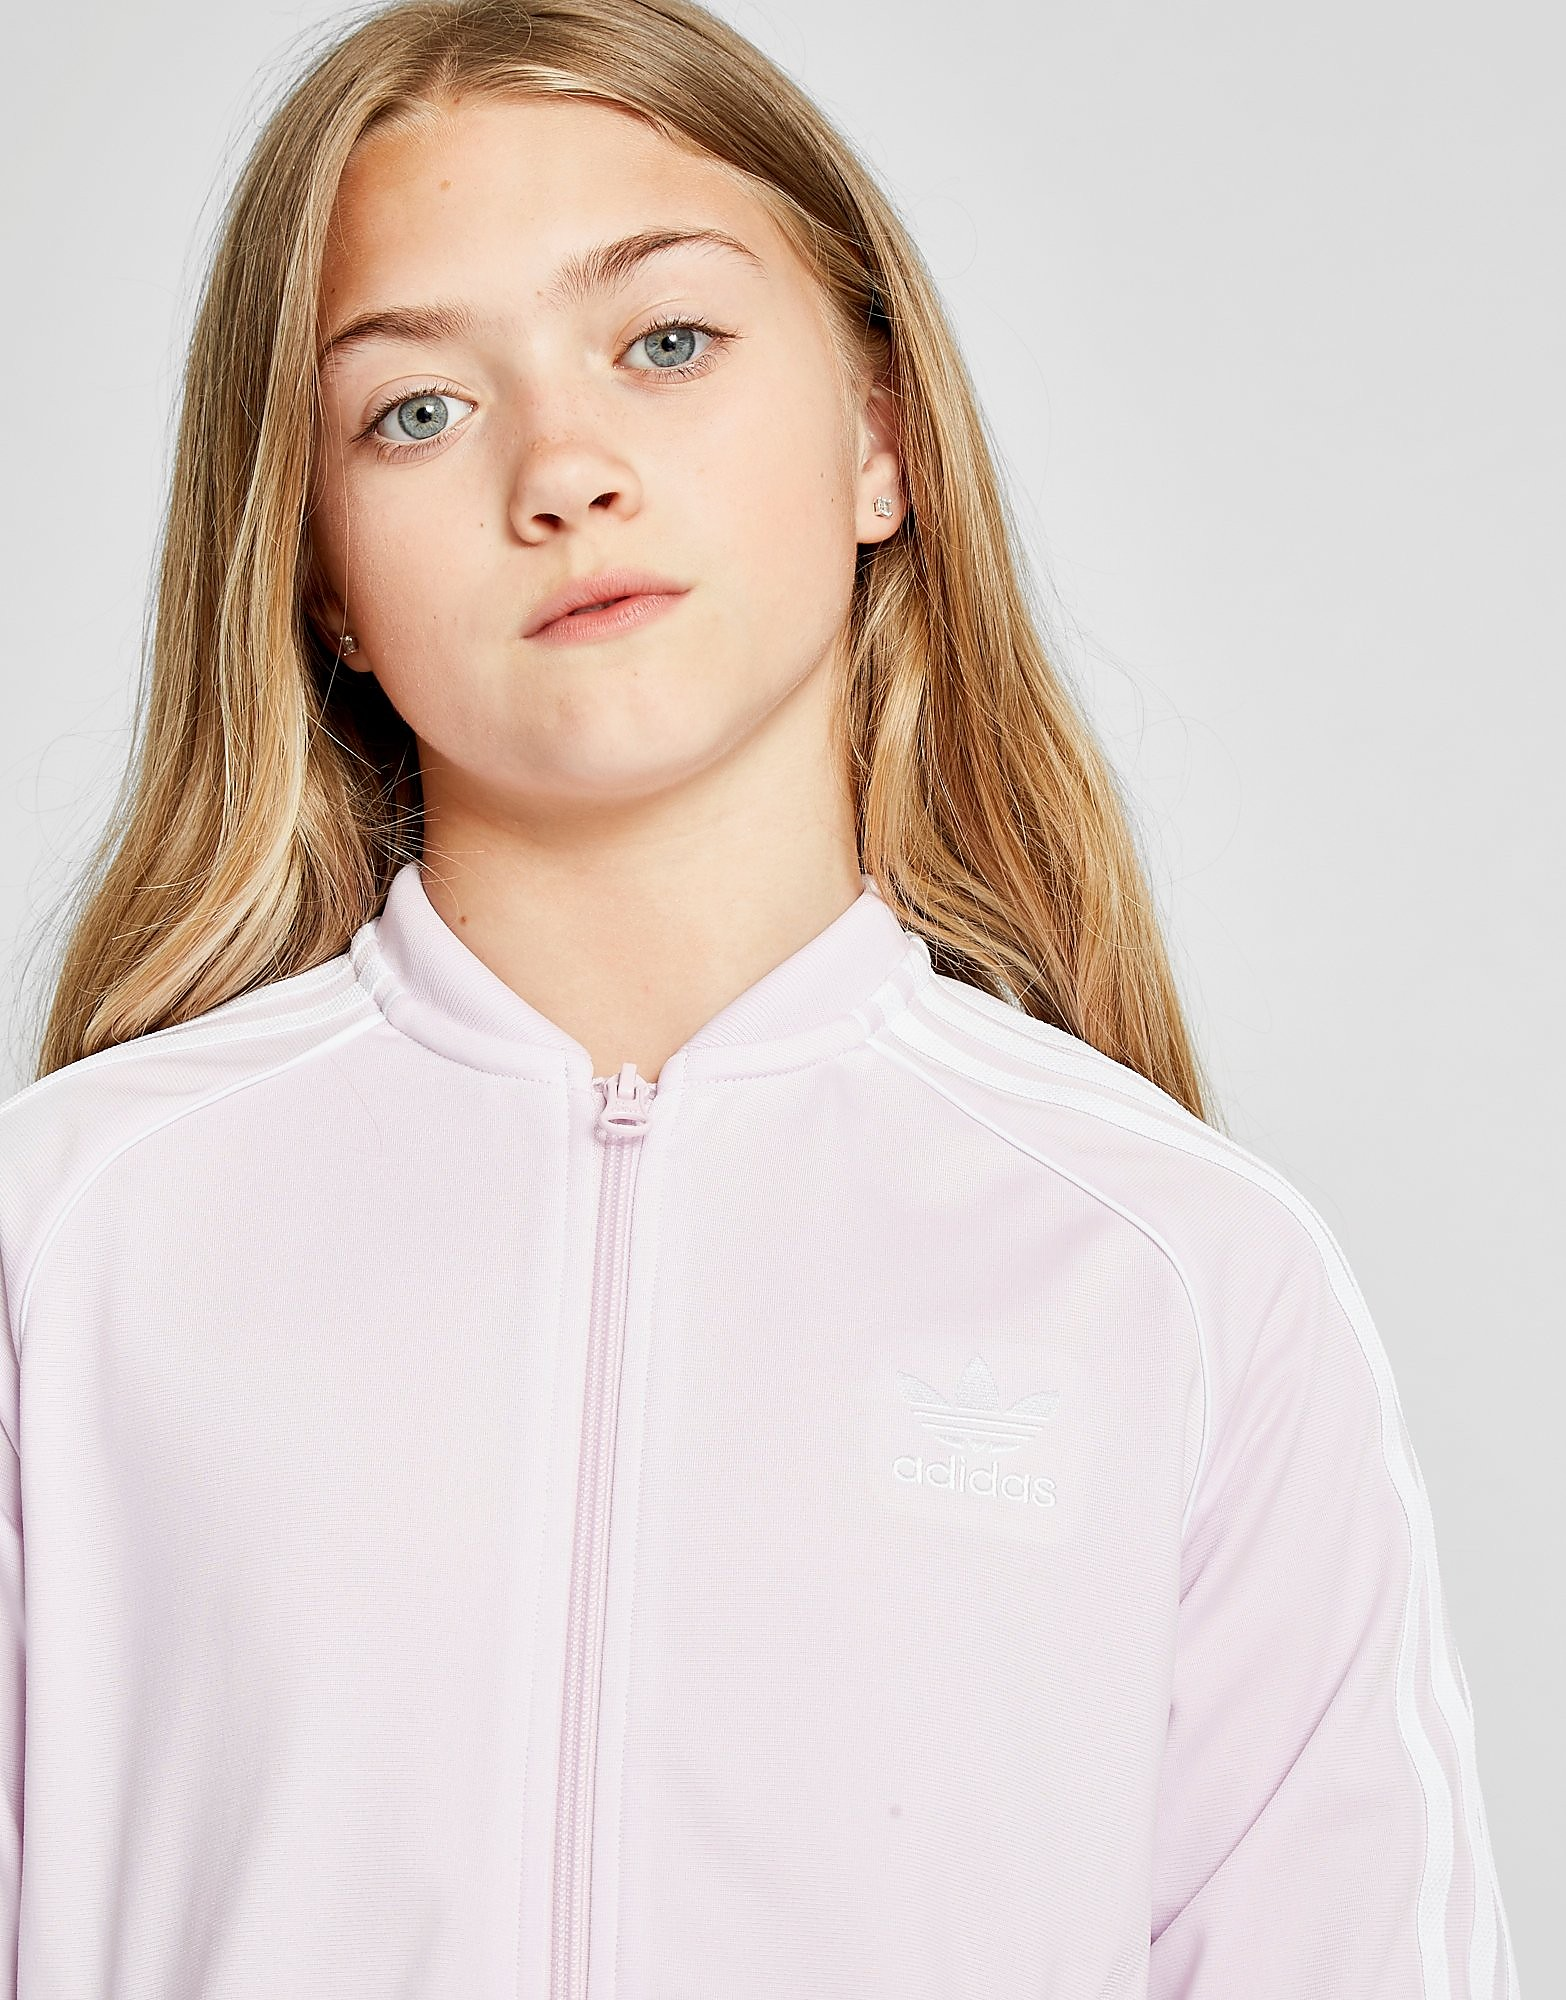 adidas Originals Girls' Superstar Track Top Junior